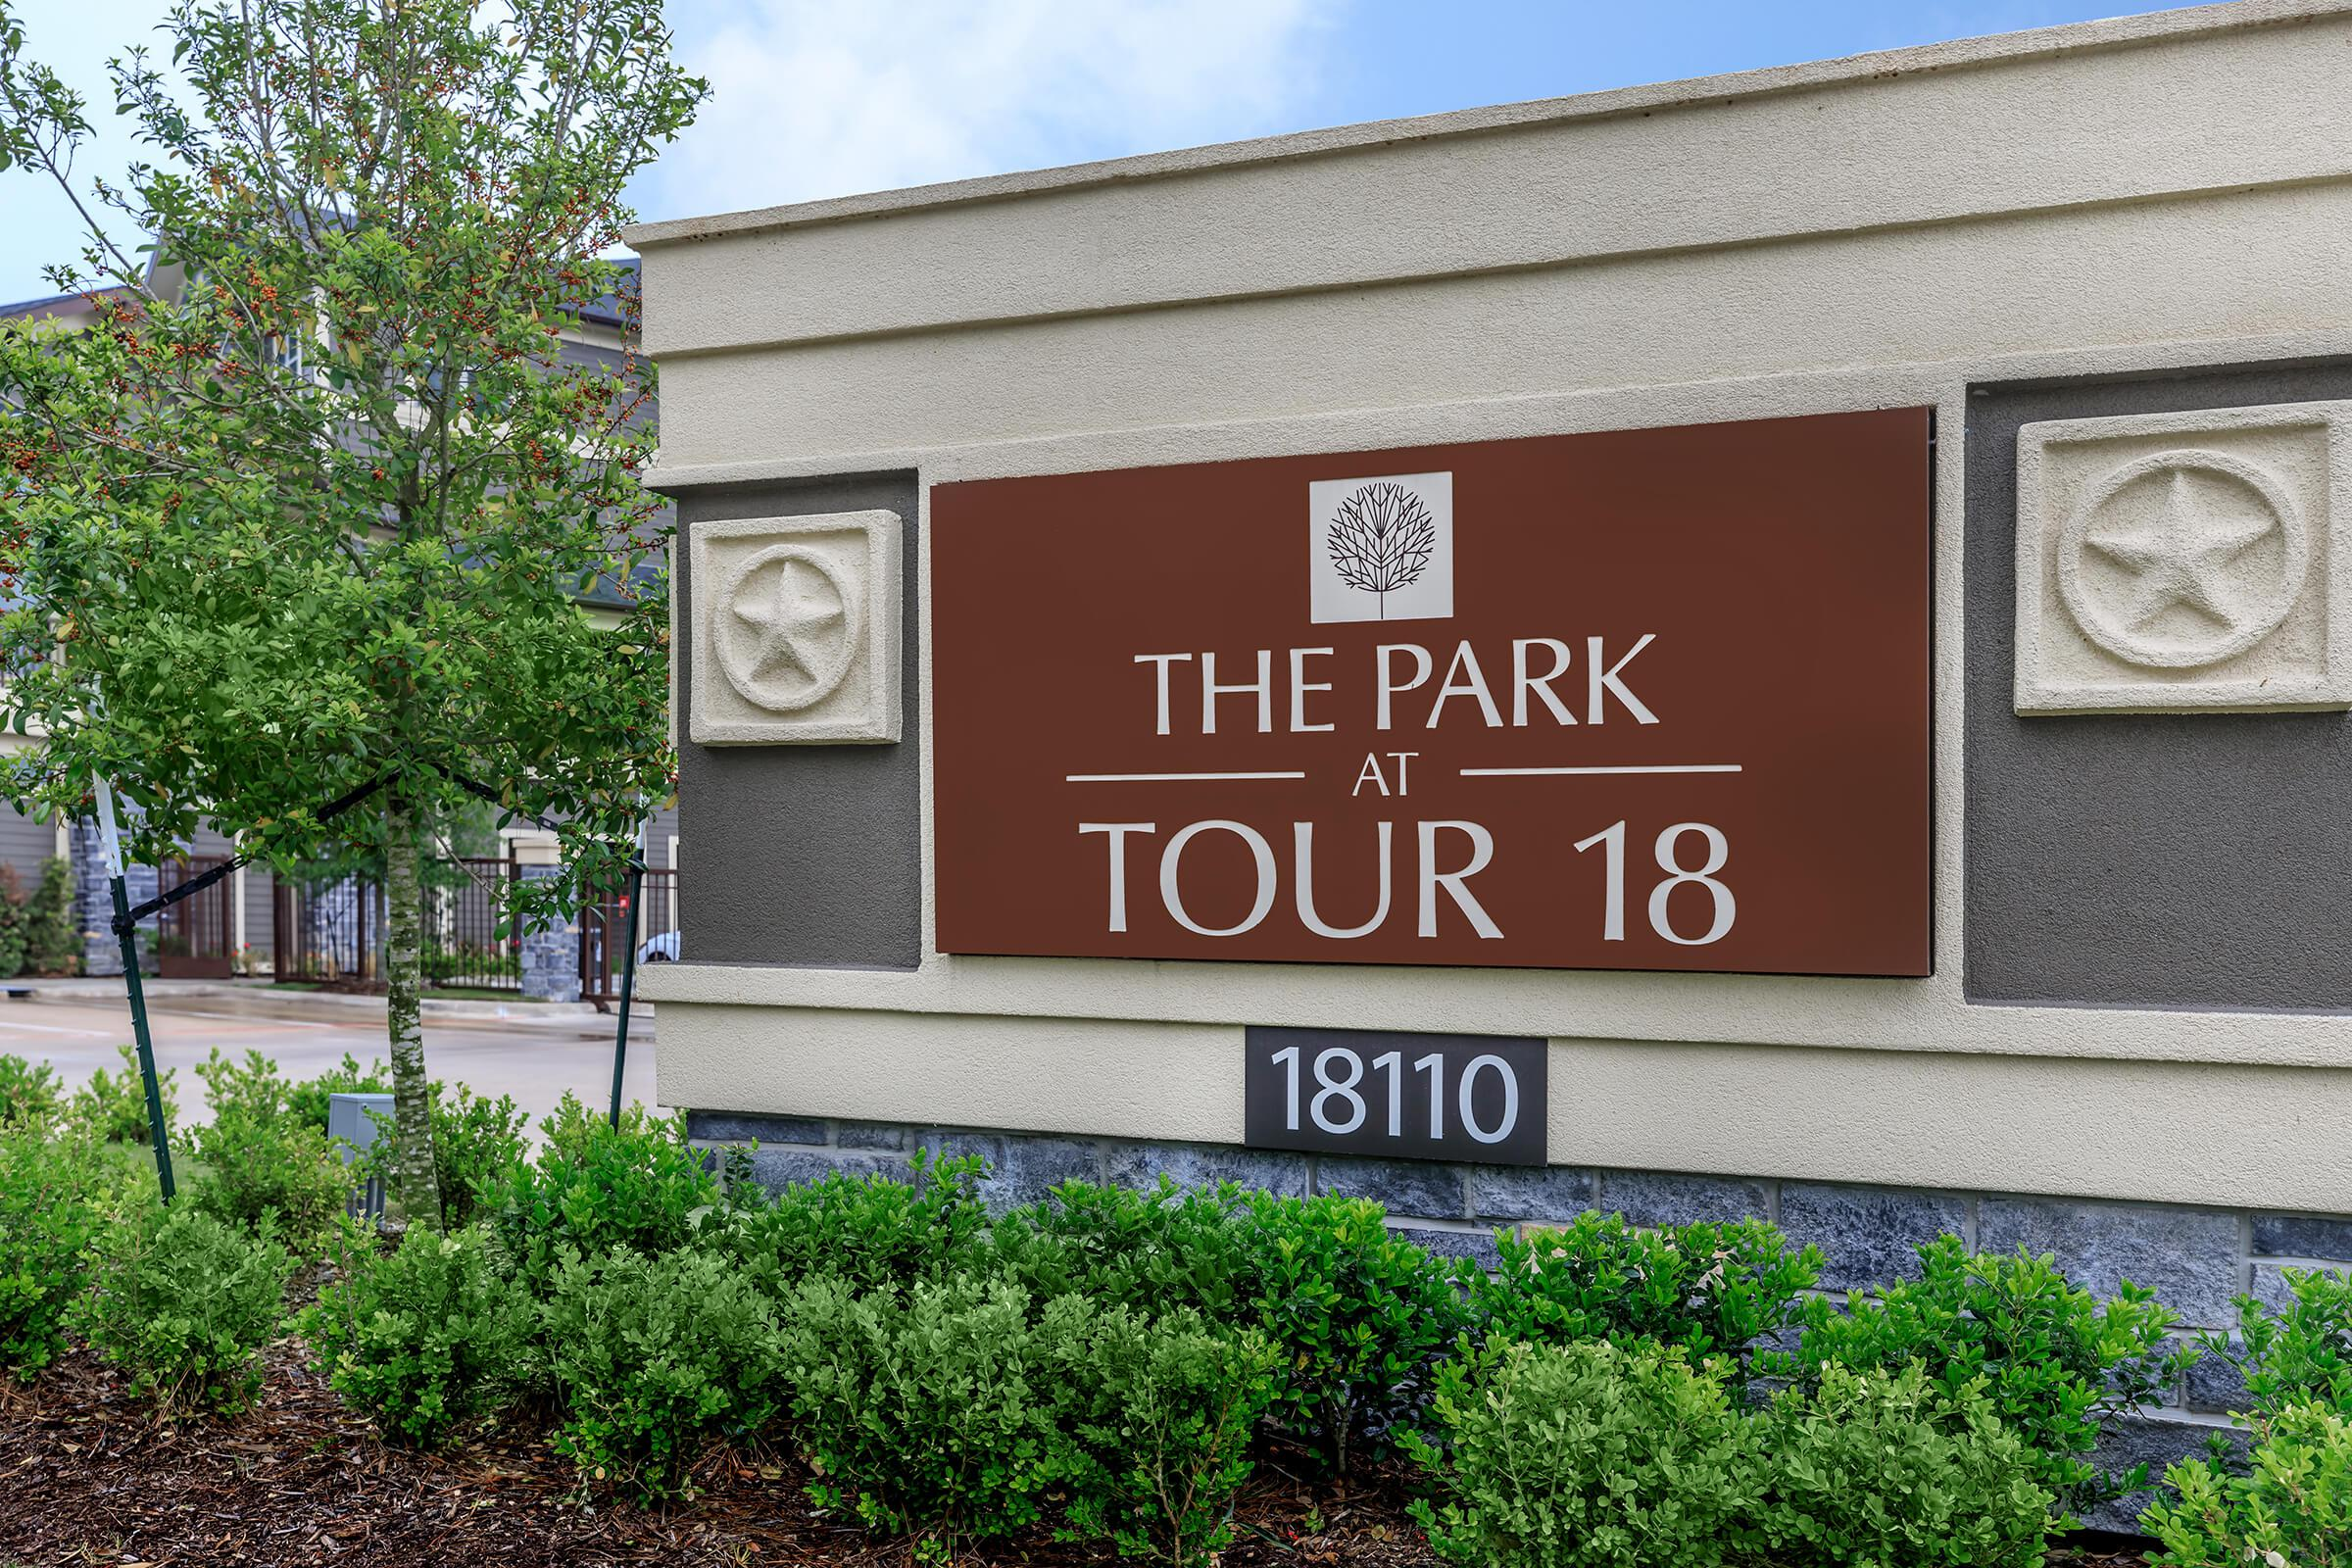 Park at Tour 18 monument sign in red with landscaping surrounding.